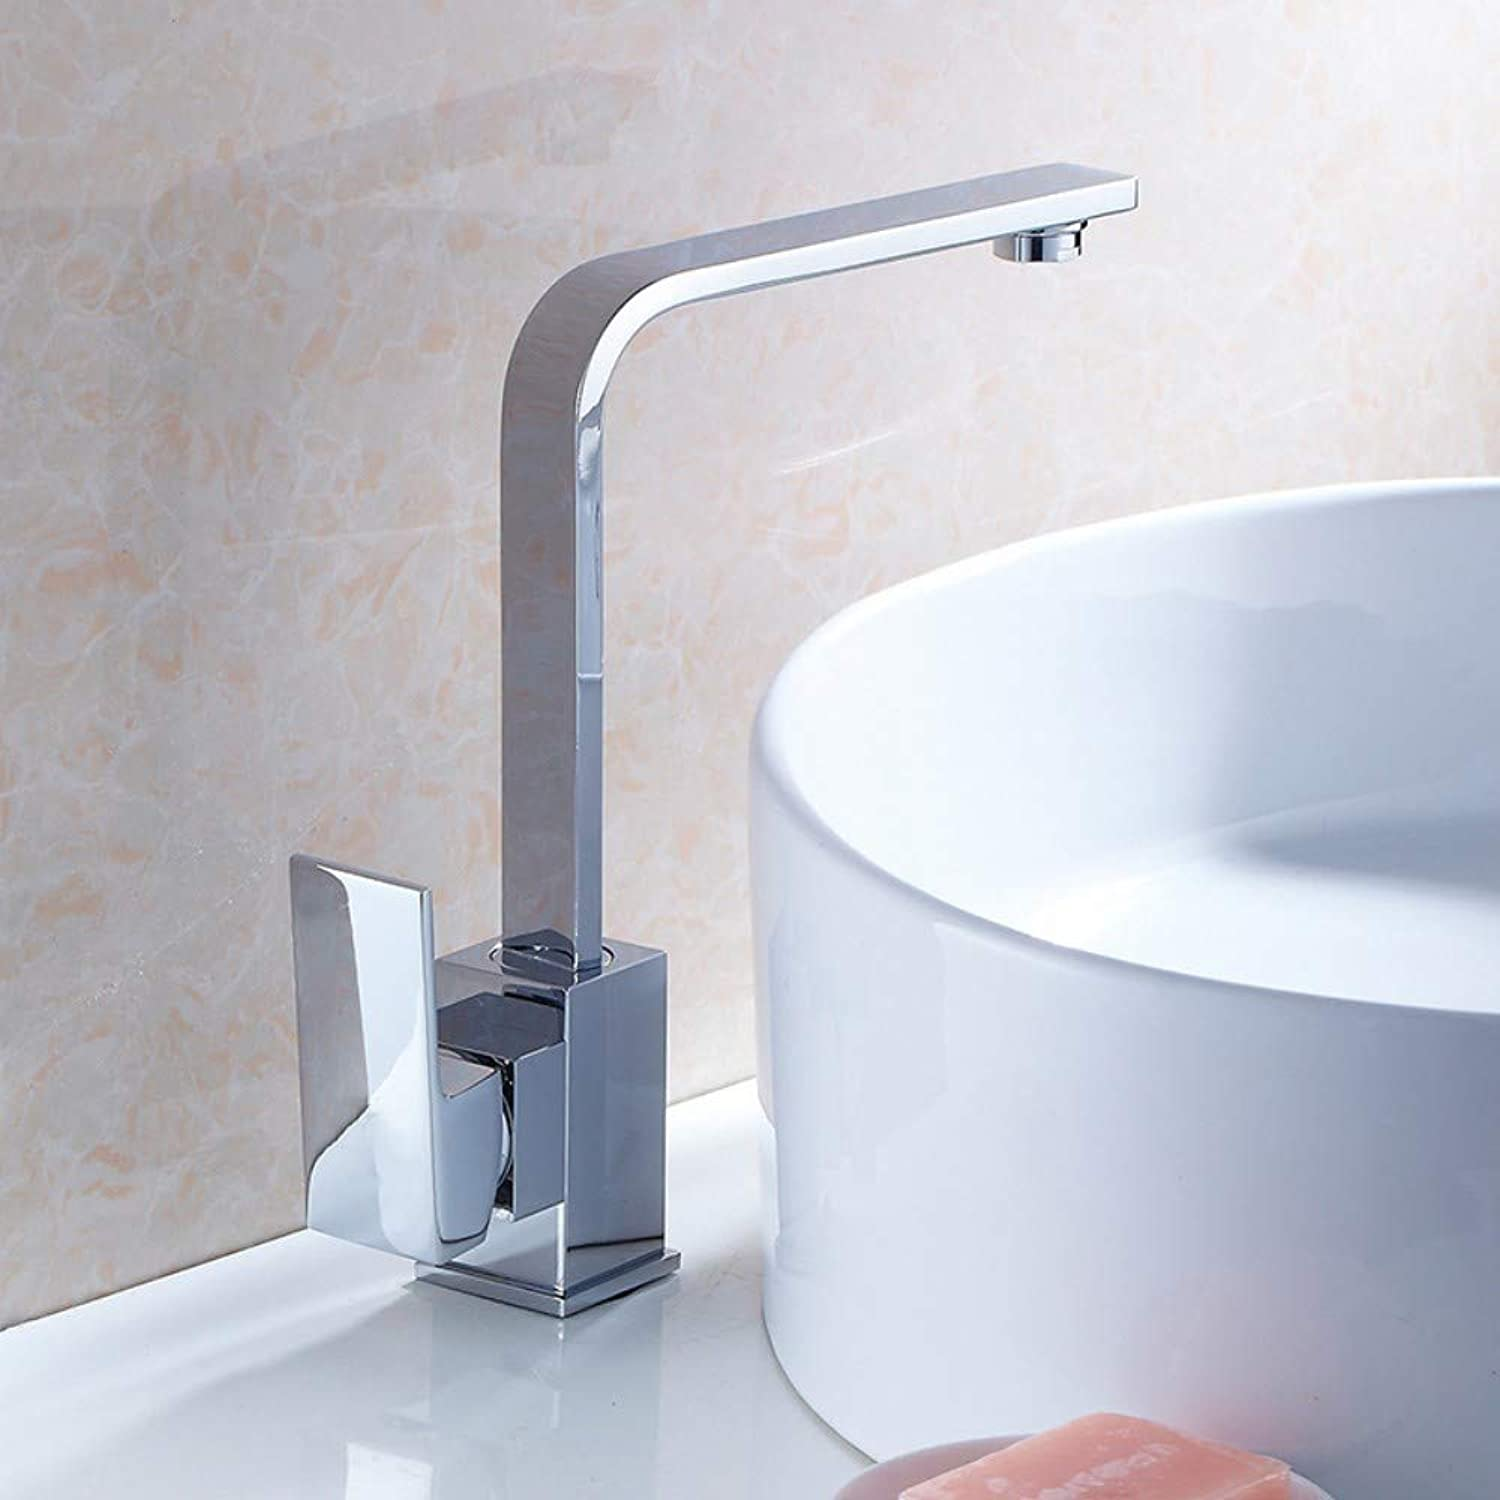 Kitchen Faucet Sink Sink Basin Above Counter Basin Hot and Cold Water Faucet Square Flat Tube redating Water